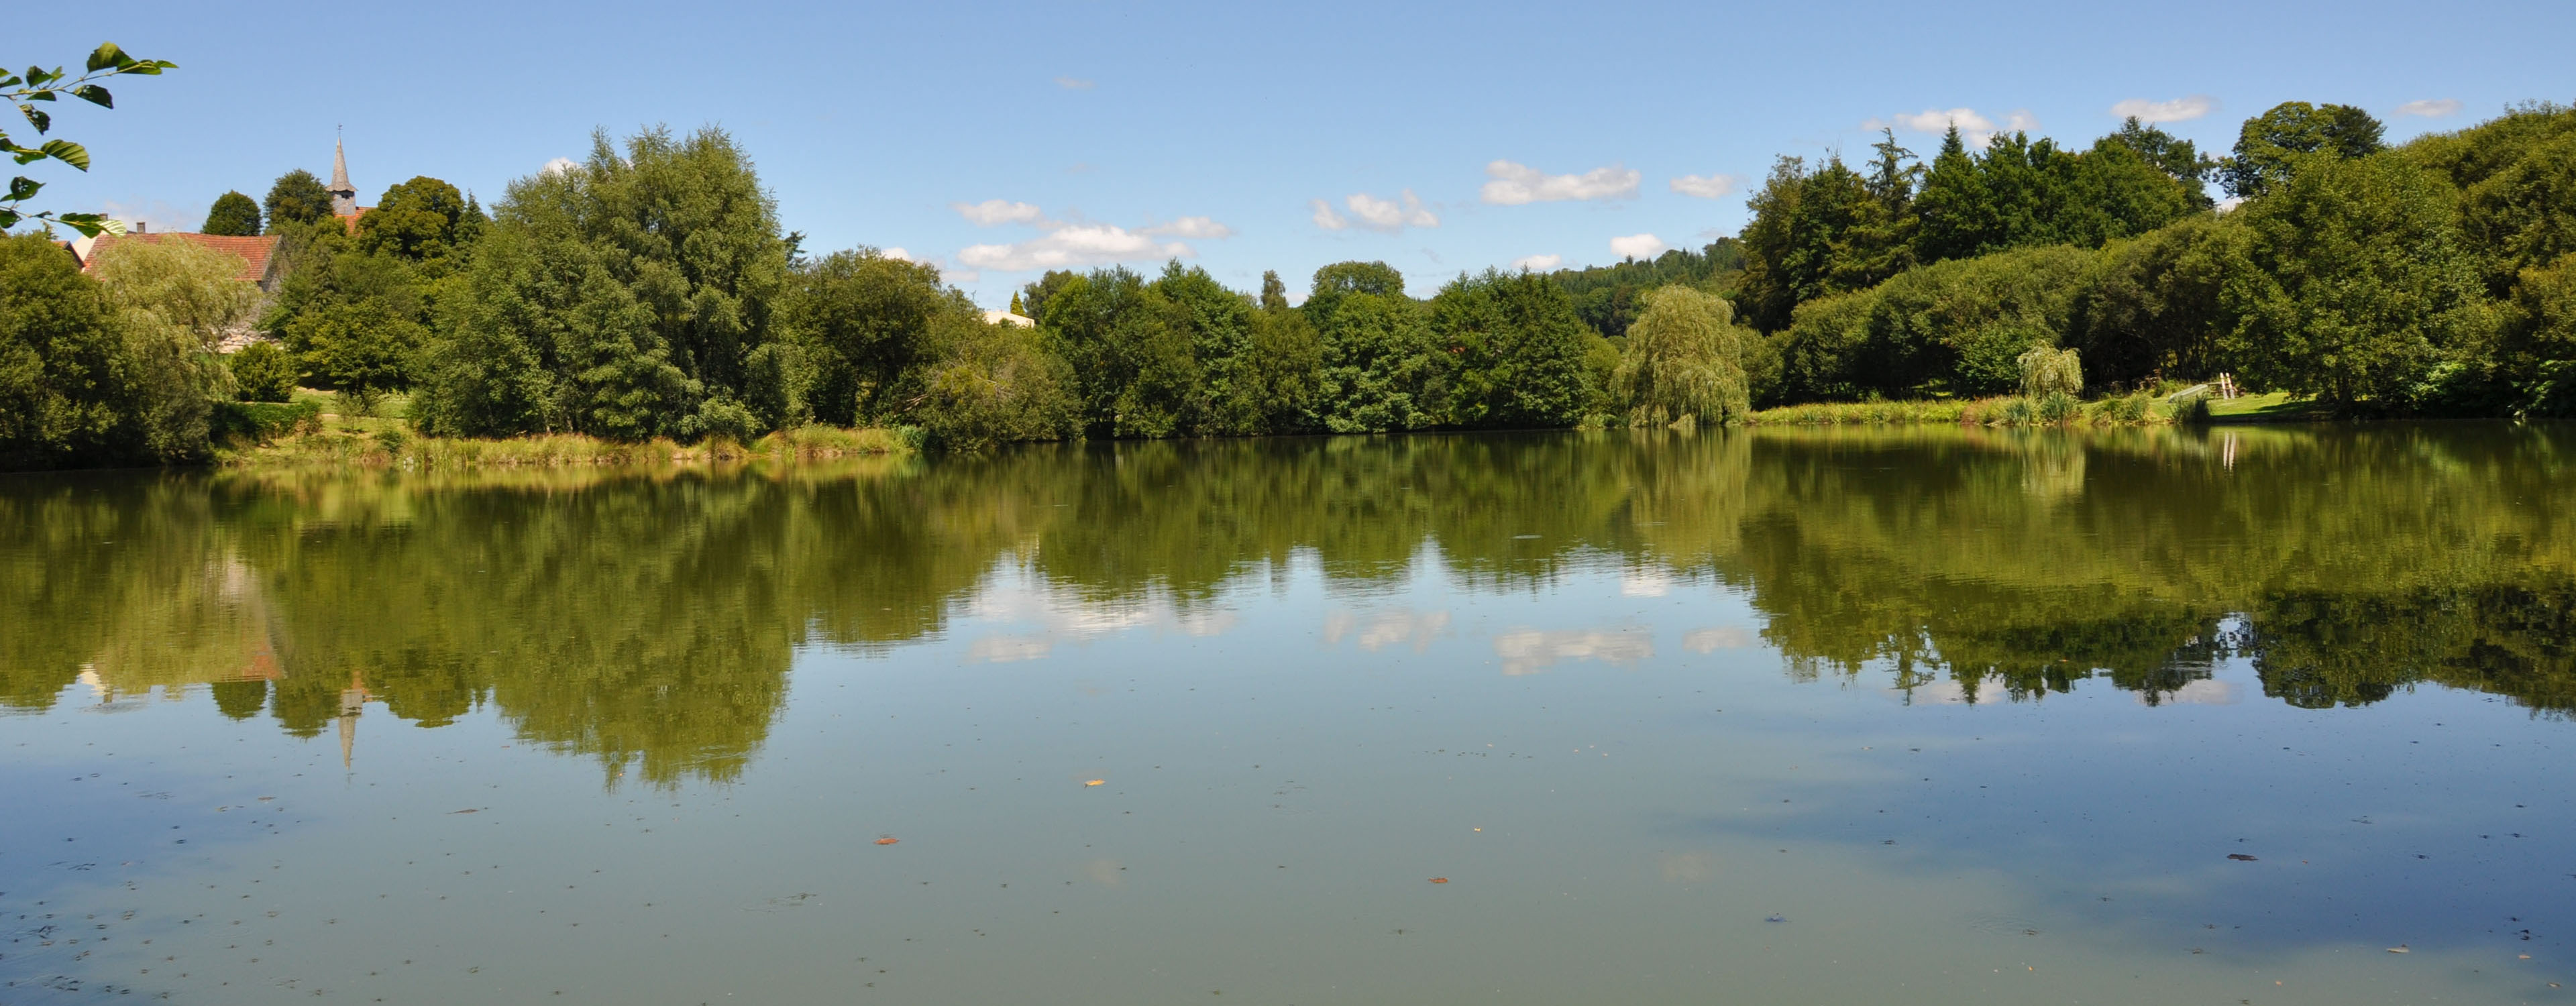 Photo gallery images of carp and fishing lake in France, Etang de Azat-Chatenet